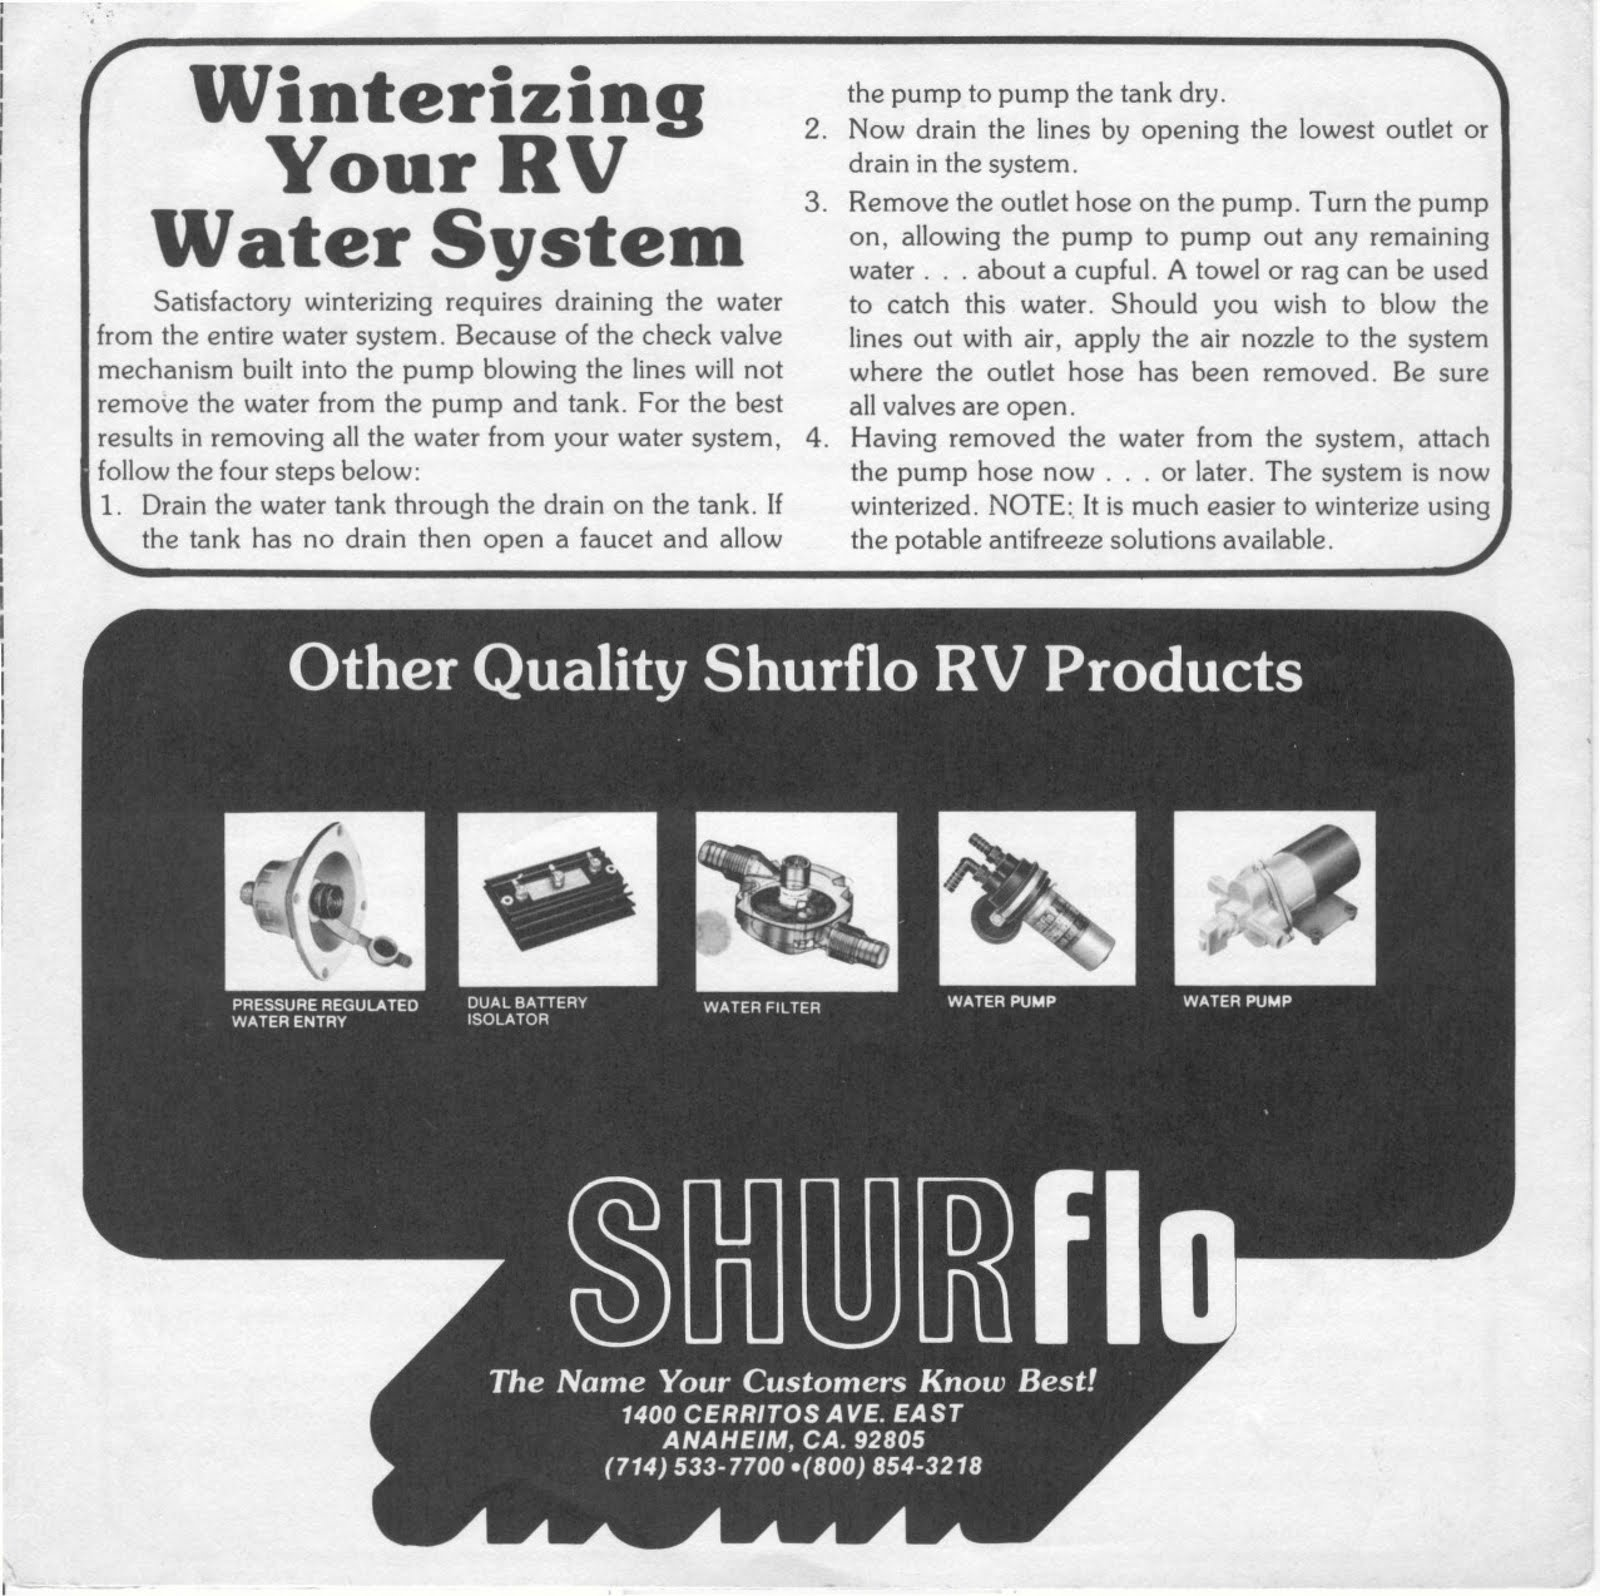 1983 fleetwood pace arrow owners manuals shurflo model series 200 shurflo model series 200 fresh water pump pooptronica